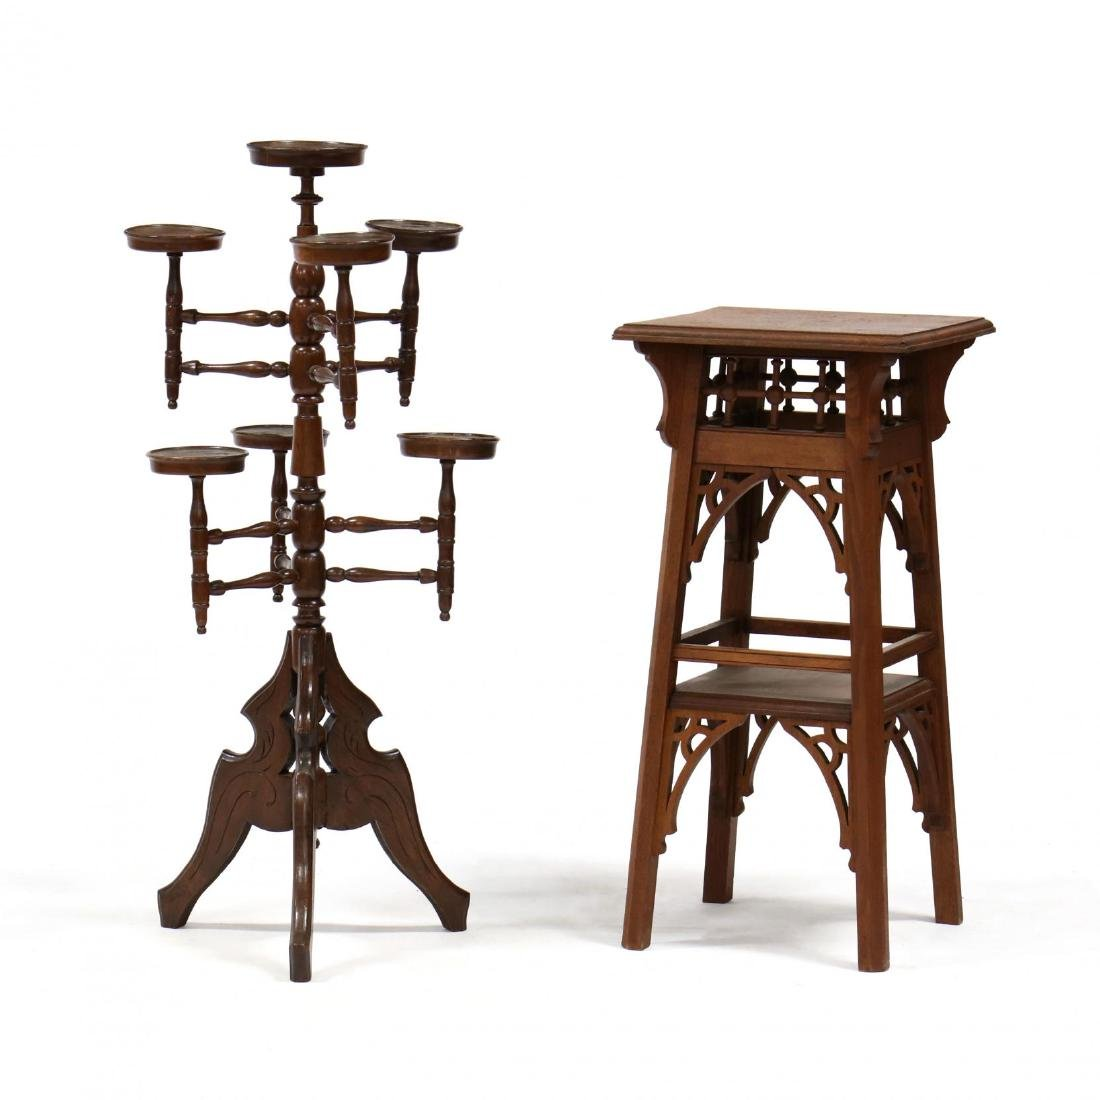 Two Victorian Walnut Stands